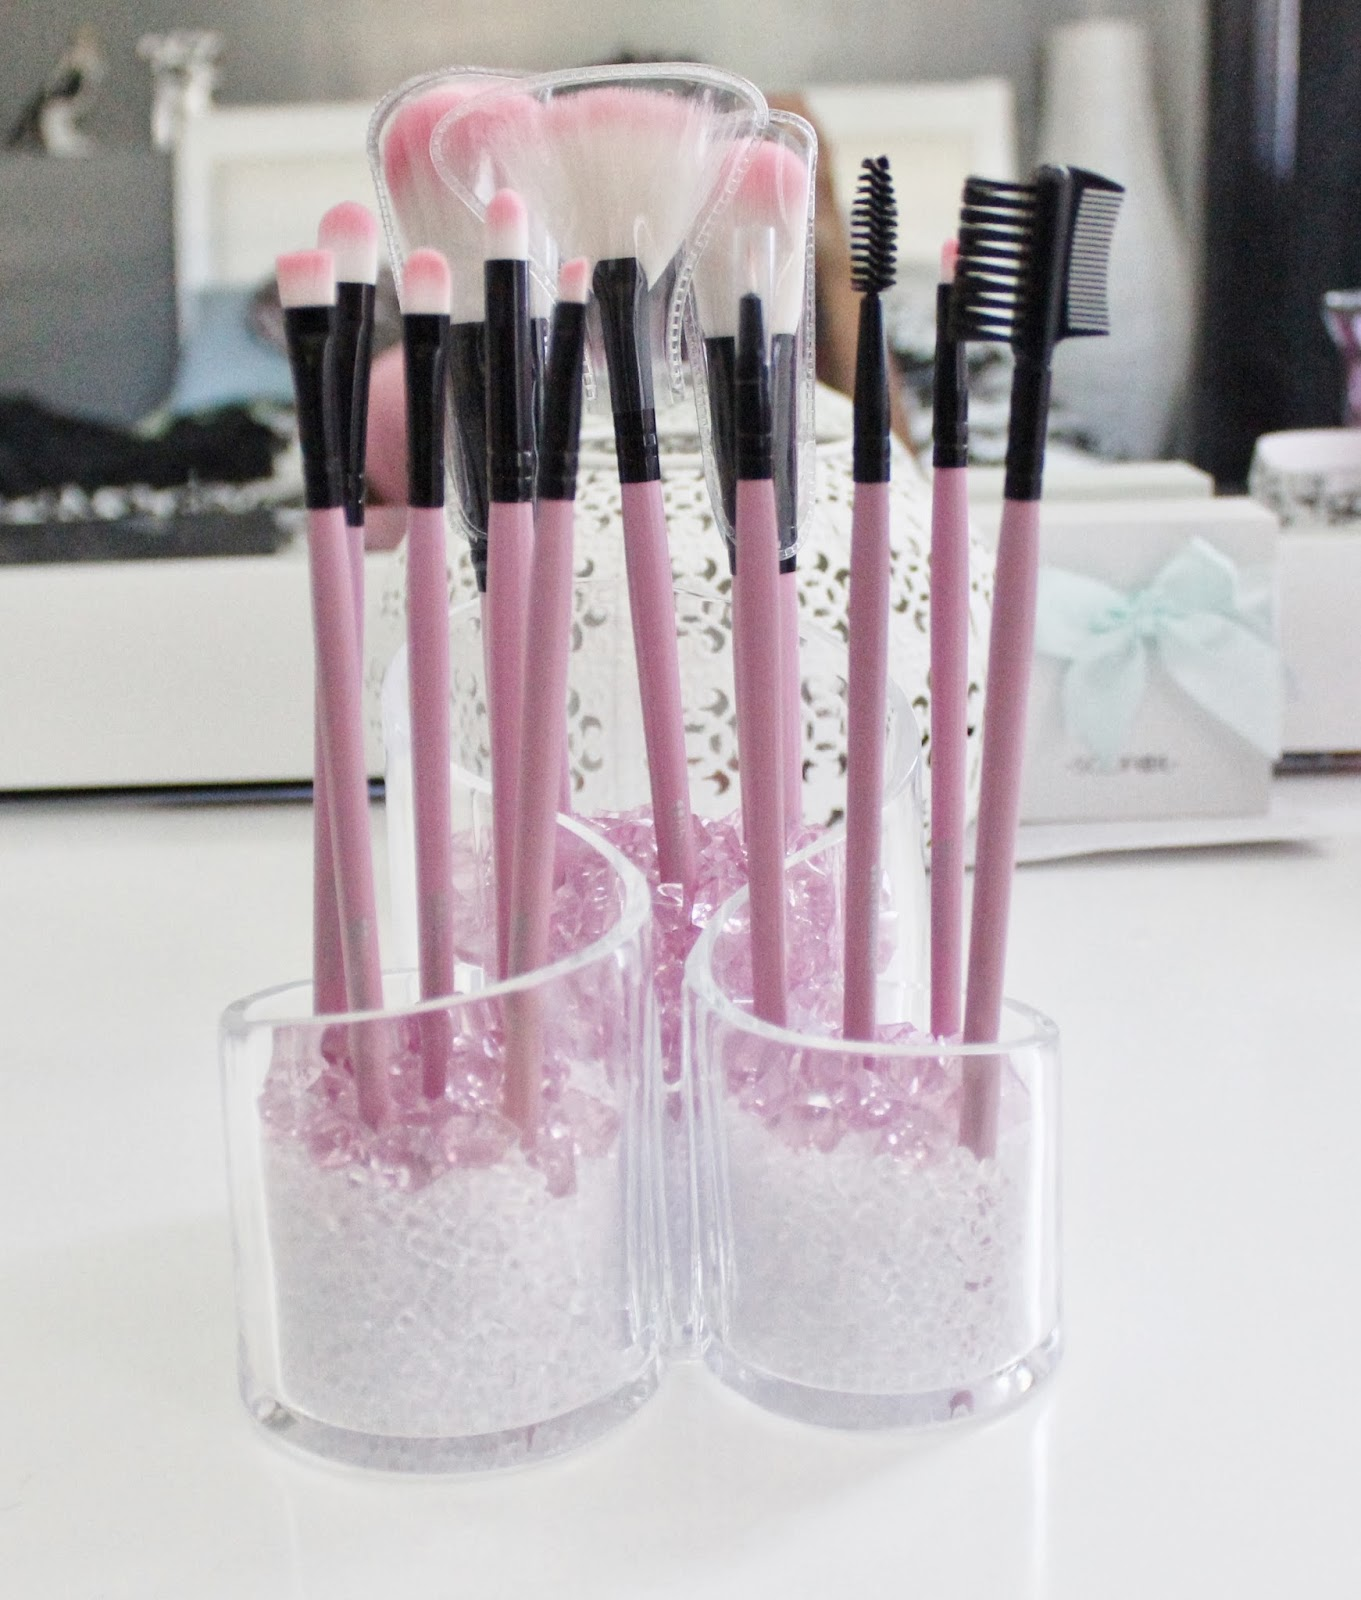 DIY makeup brush holder & DIY makeup brush holder | Journey to Waist Length